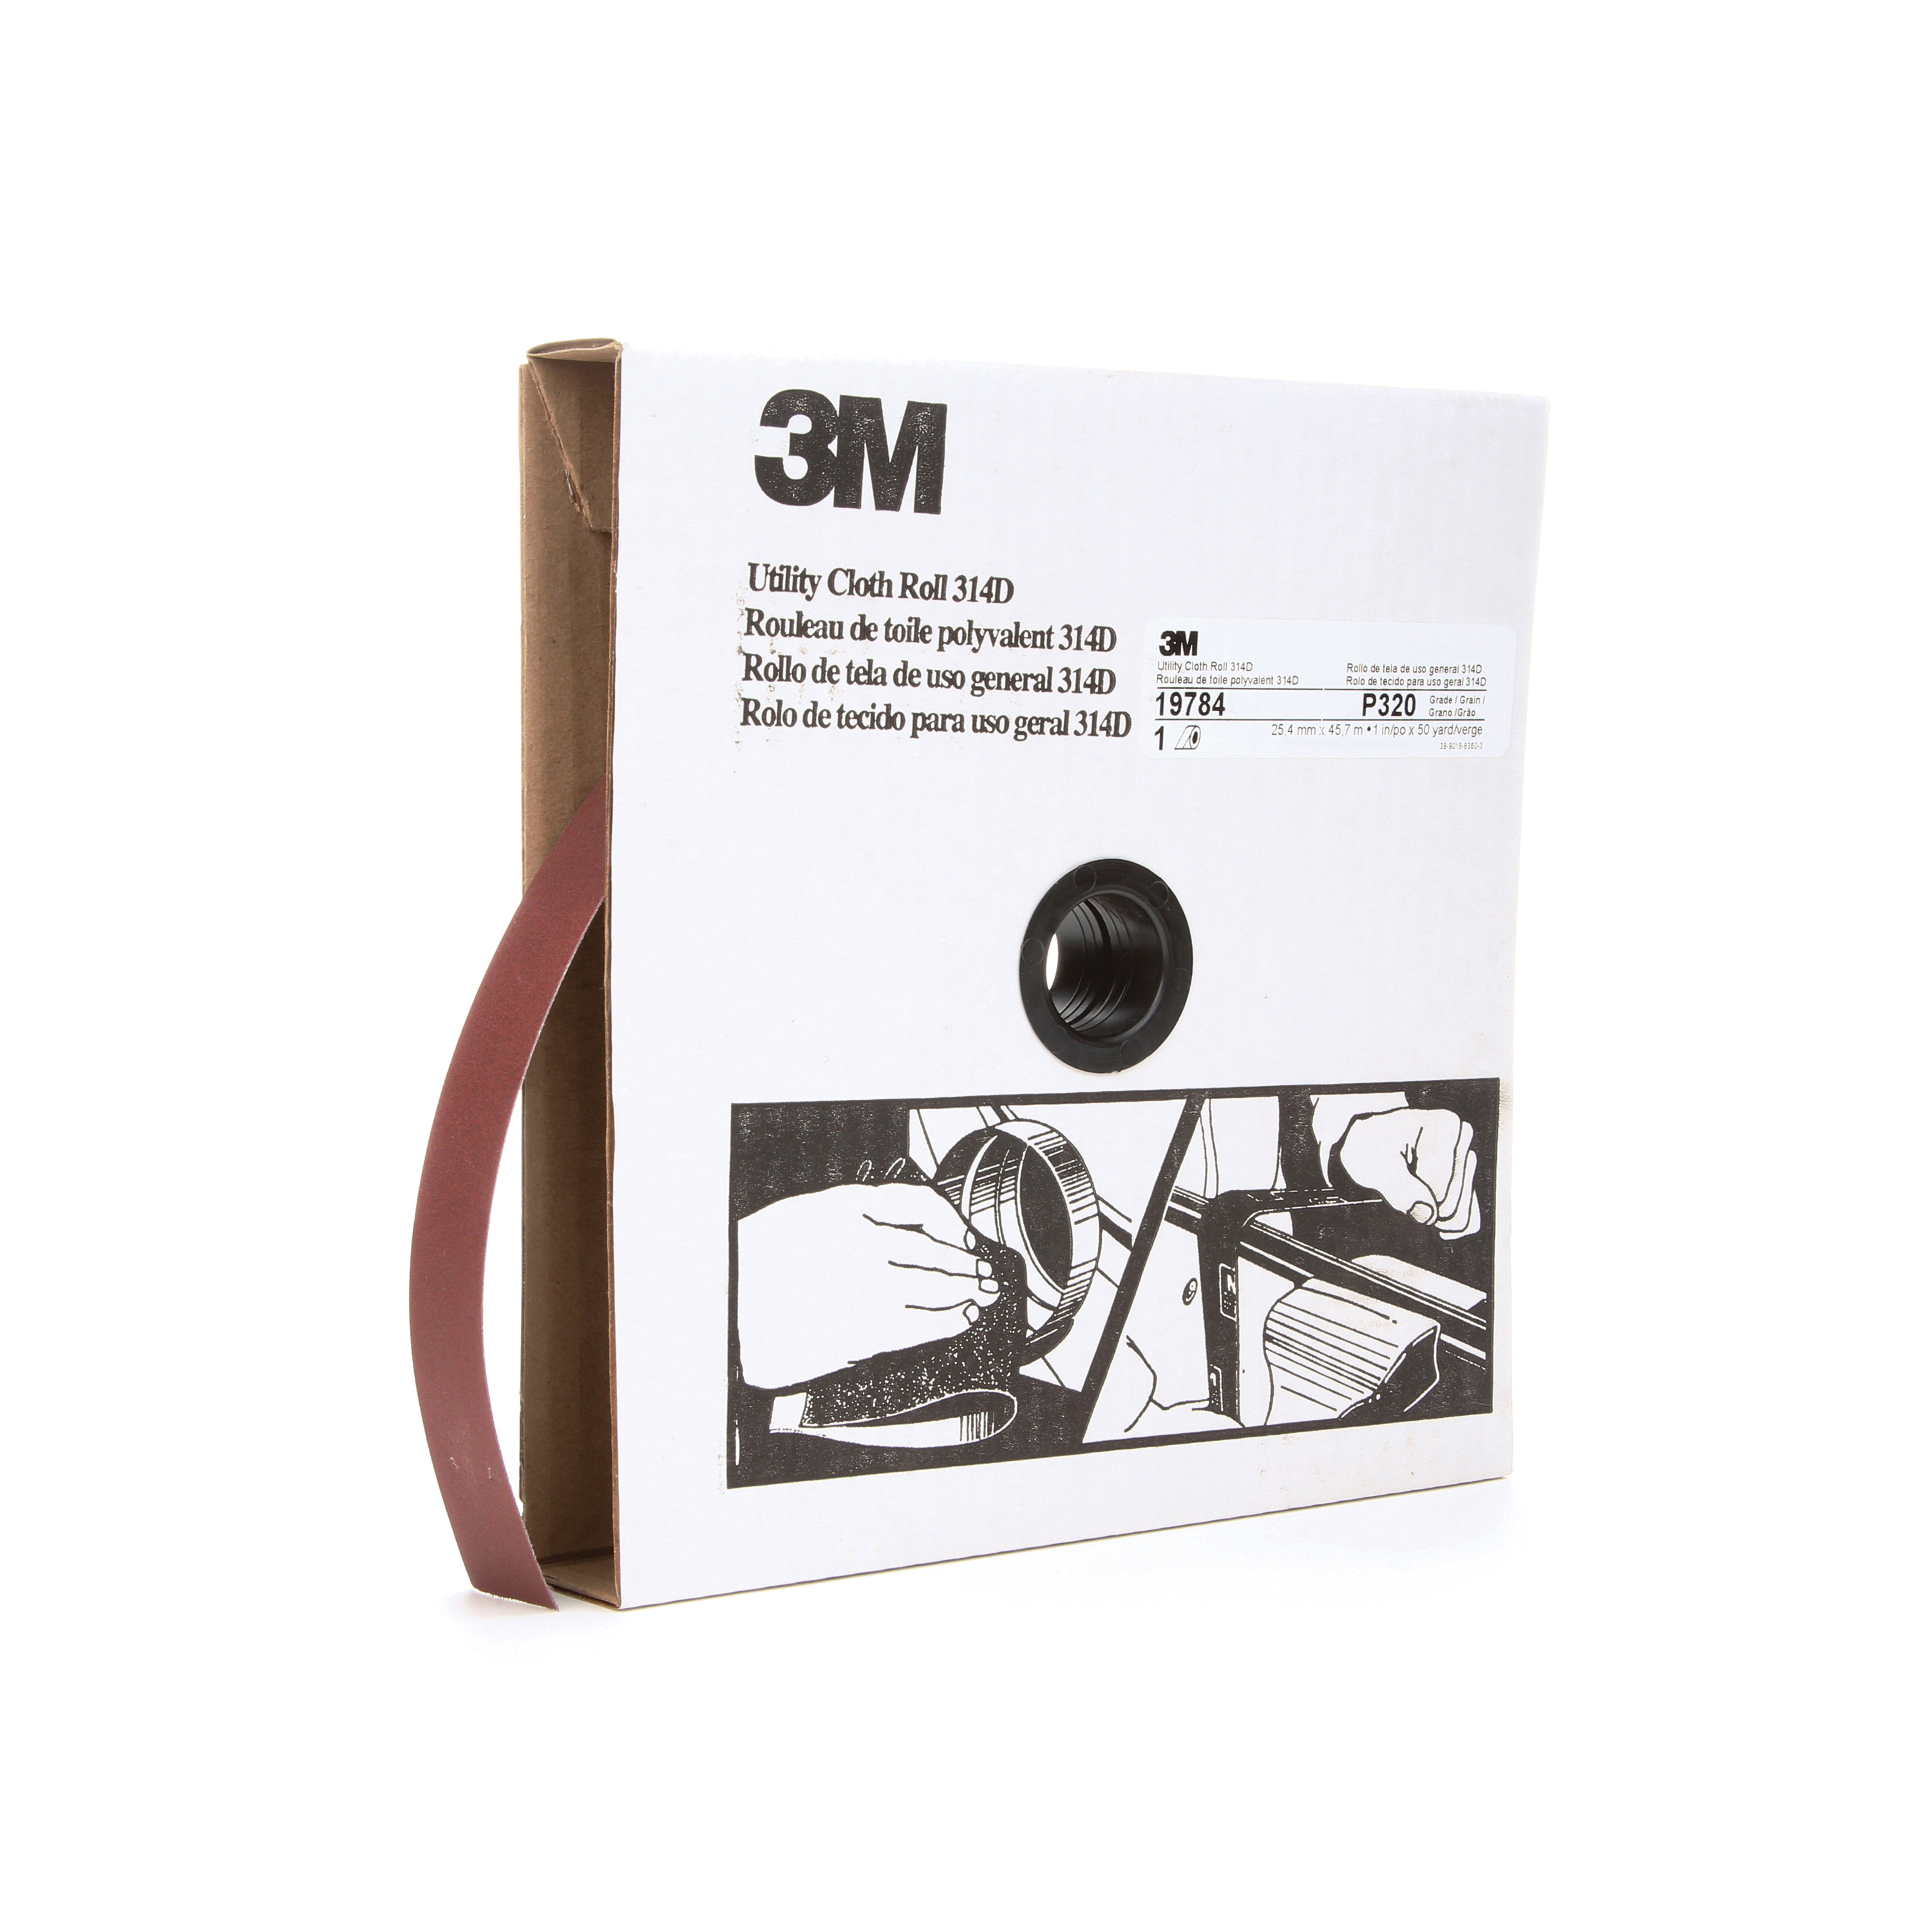 3M™ 051115-19784 Utility Cloth Roll, 1 in W x 50 yd L, P320 Grit, Very Fine Grade, Aluminum Oxide Abrasive, Cloth Backing